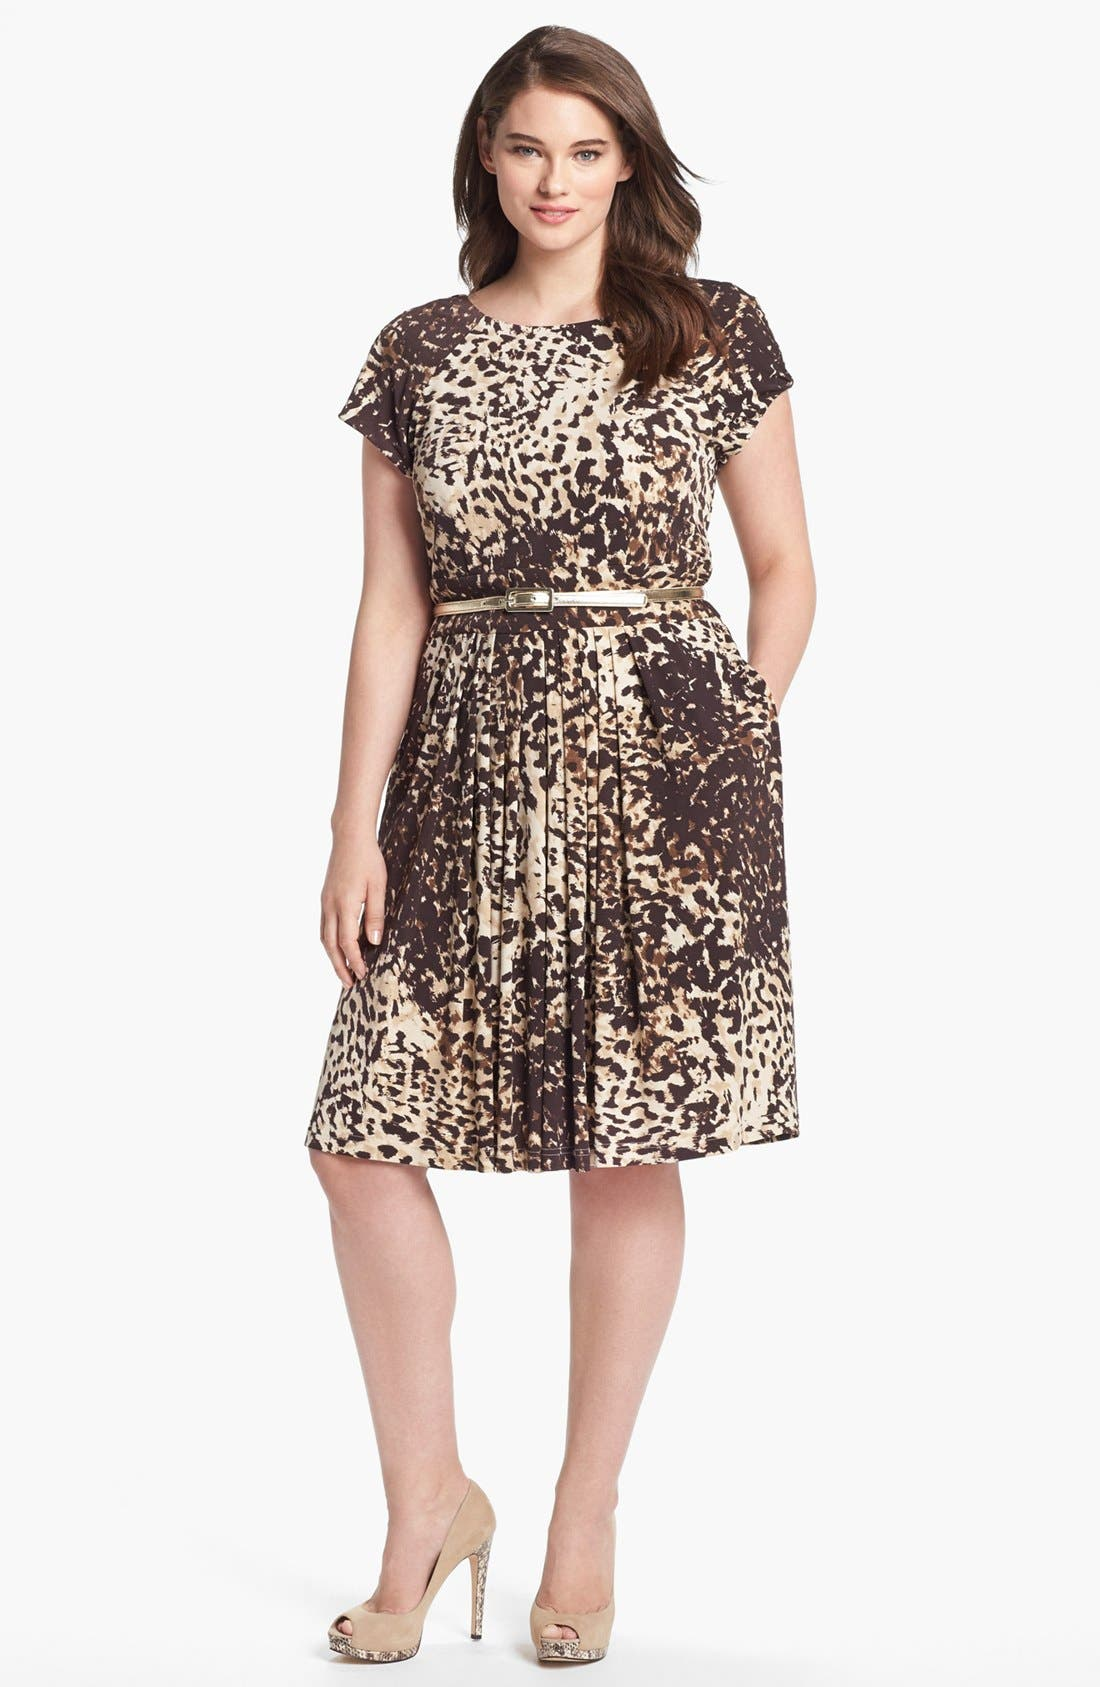 Alternate Image 1 Selected - Eliza J Print Jersey Fit & Flare Dress (Plus Size)